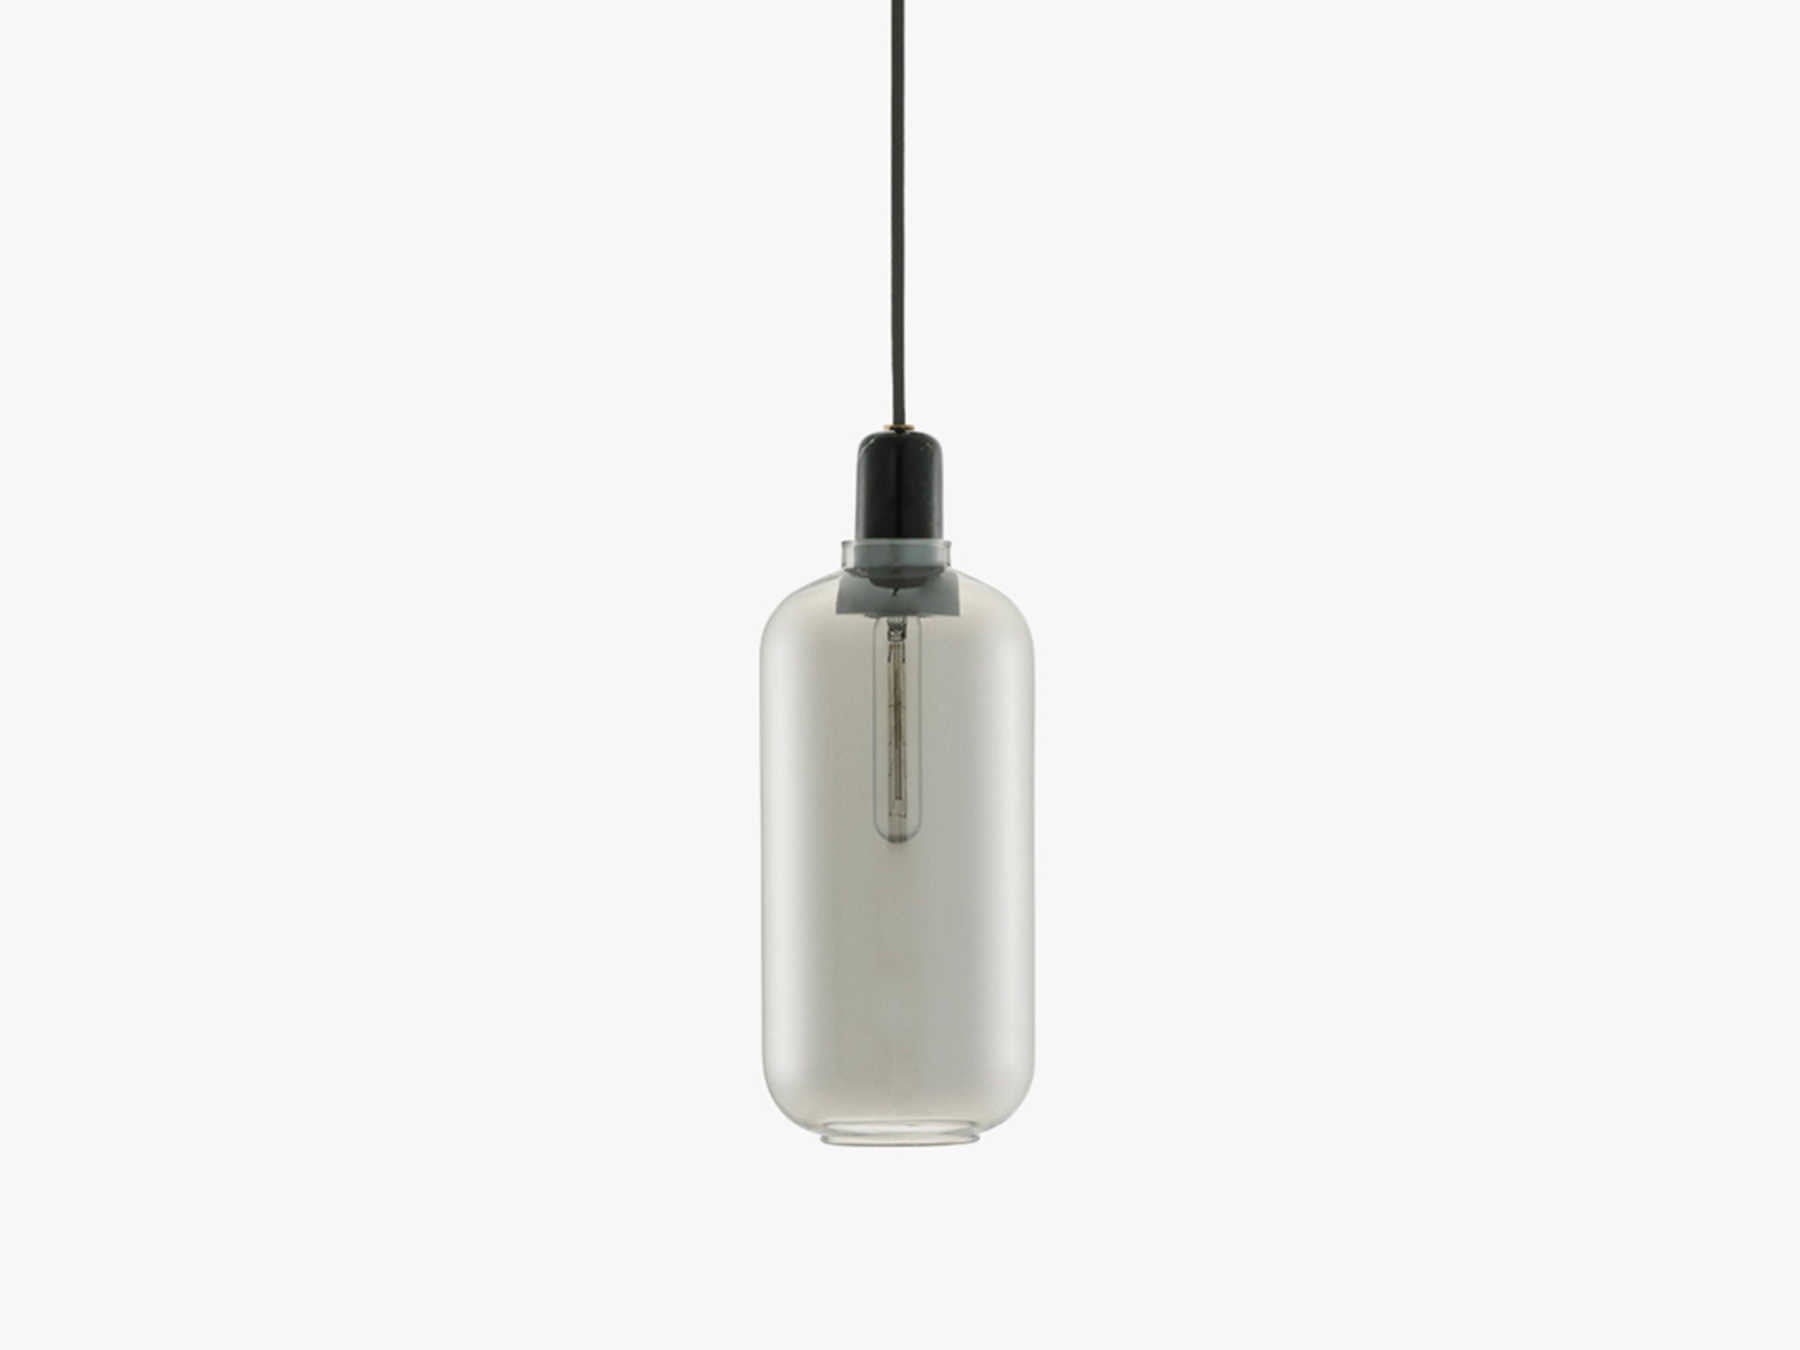 Amp Large, Smoke/Black fra Normann Copenhagen